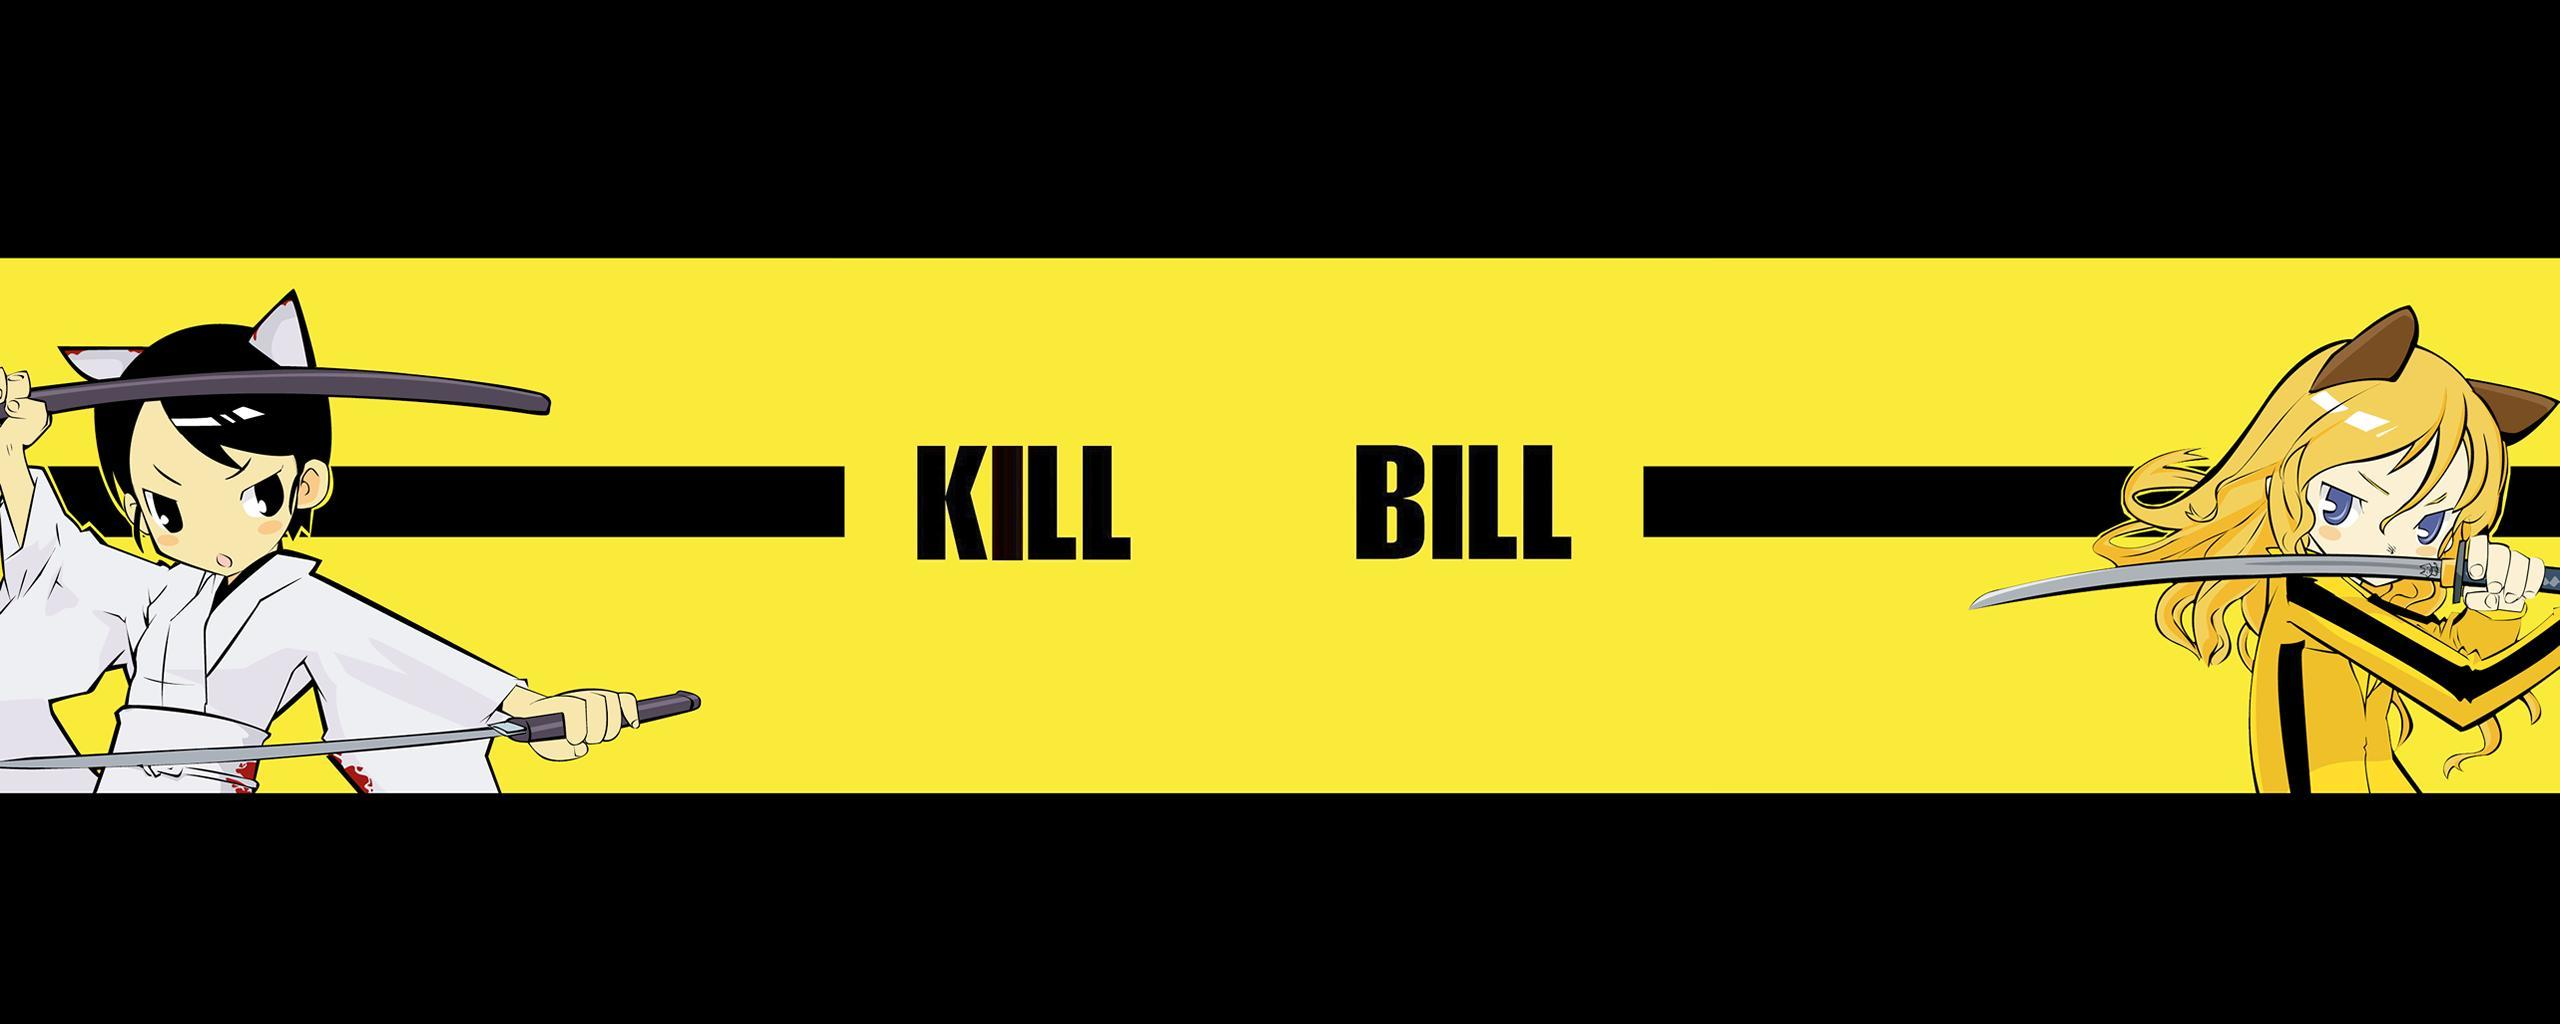 Anime kill bill kill-bill